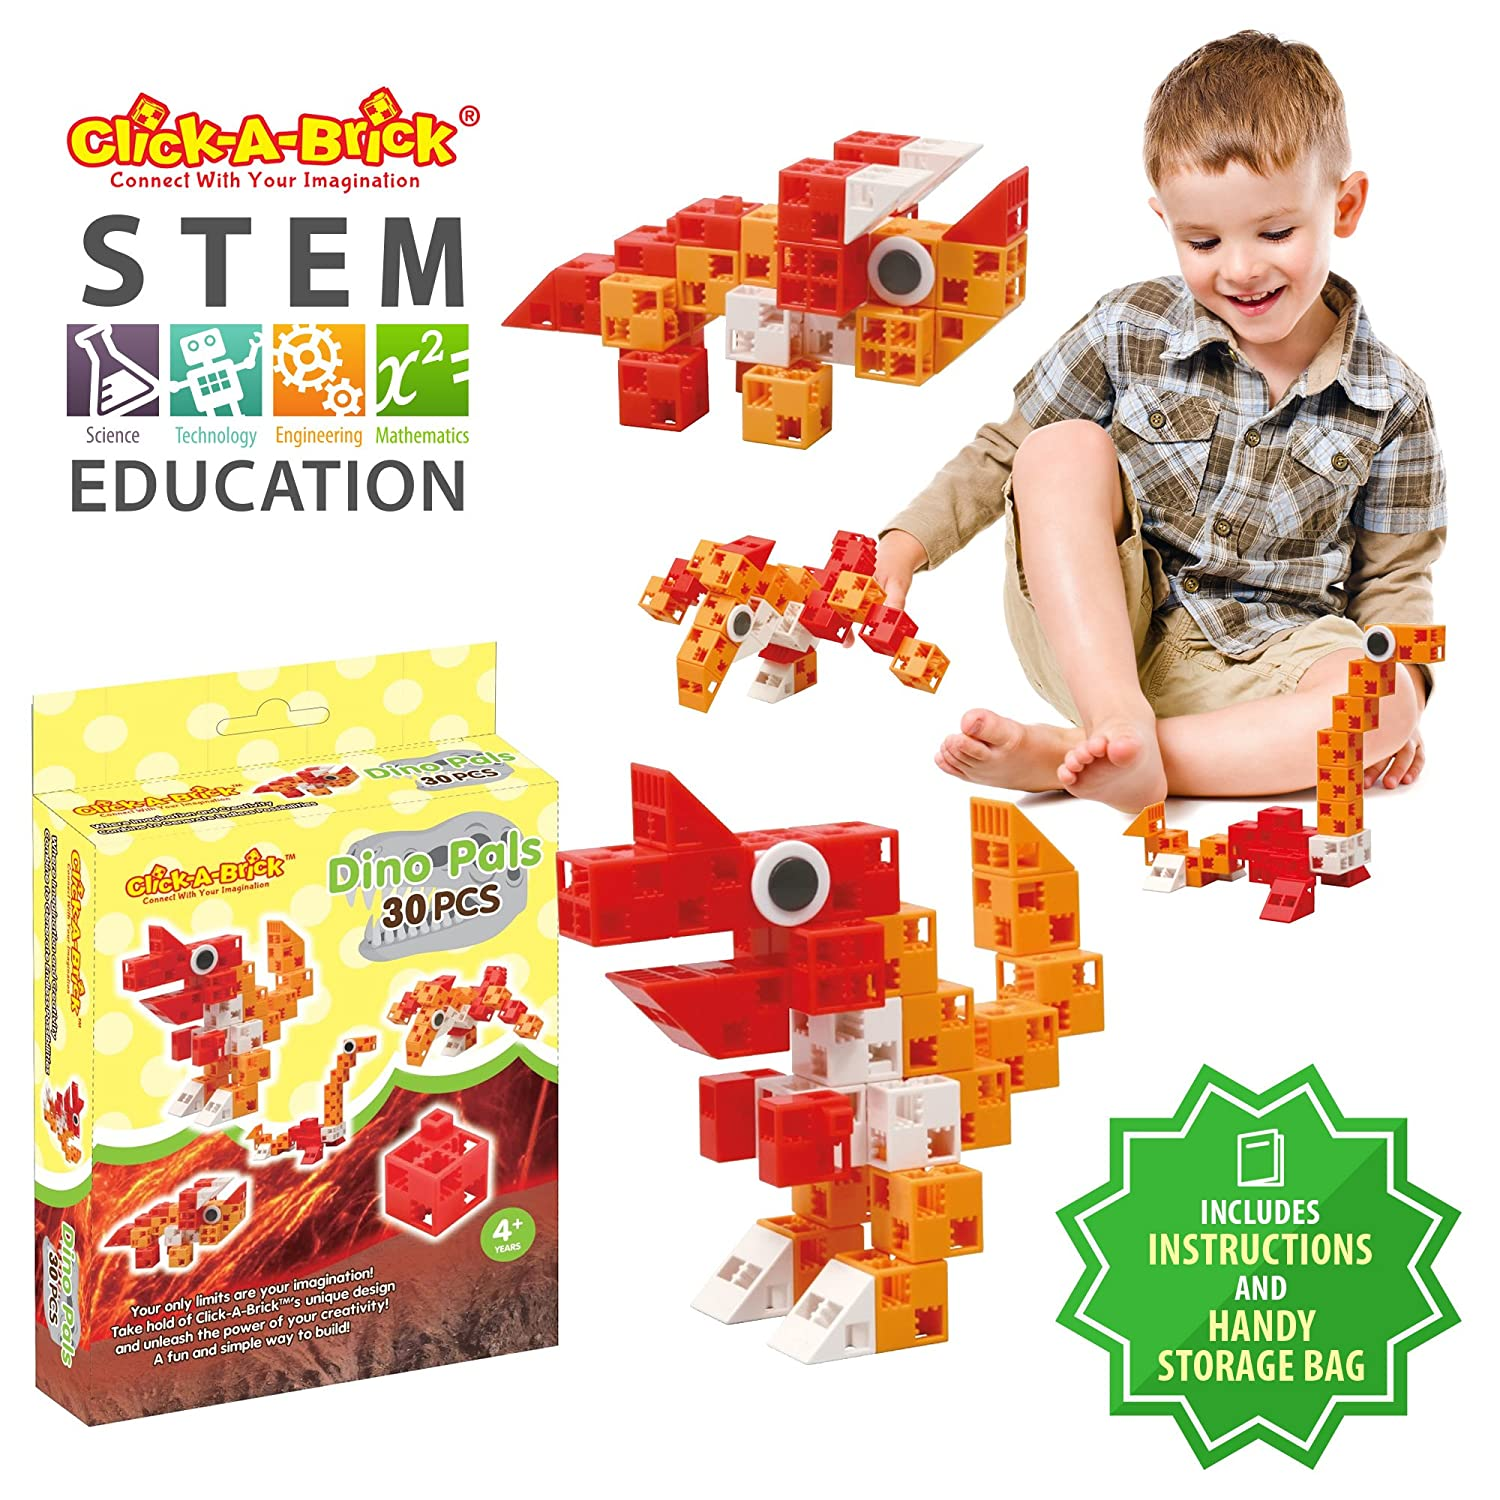 Best STEM Toys for Boys /& Girls Age 4 5 6 Year Old Click-A-Brick Dino Pals 30pc Building Blocks Set Fun Kids 3D Construction Puzzle Top Educational Learning Gift for Children Ages 4-10